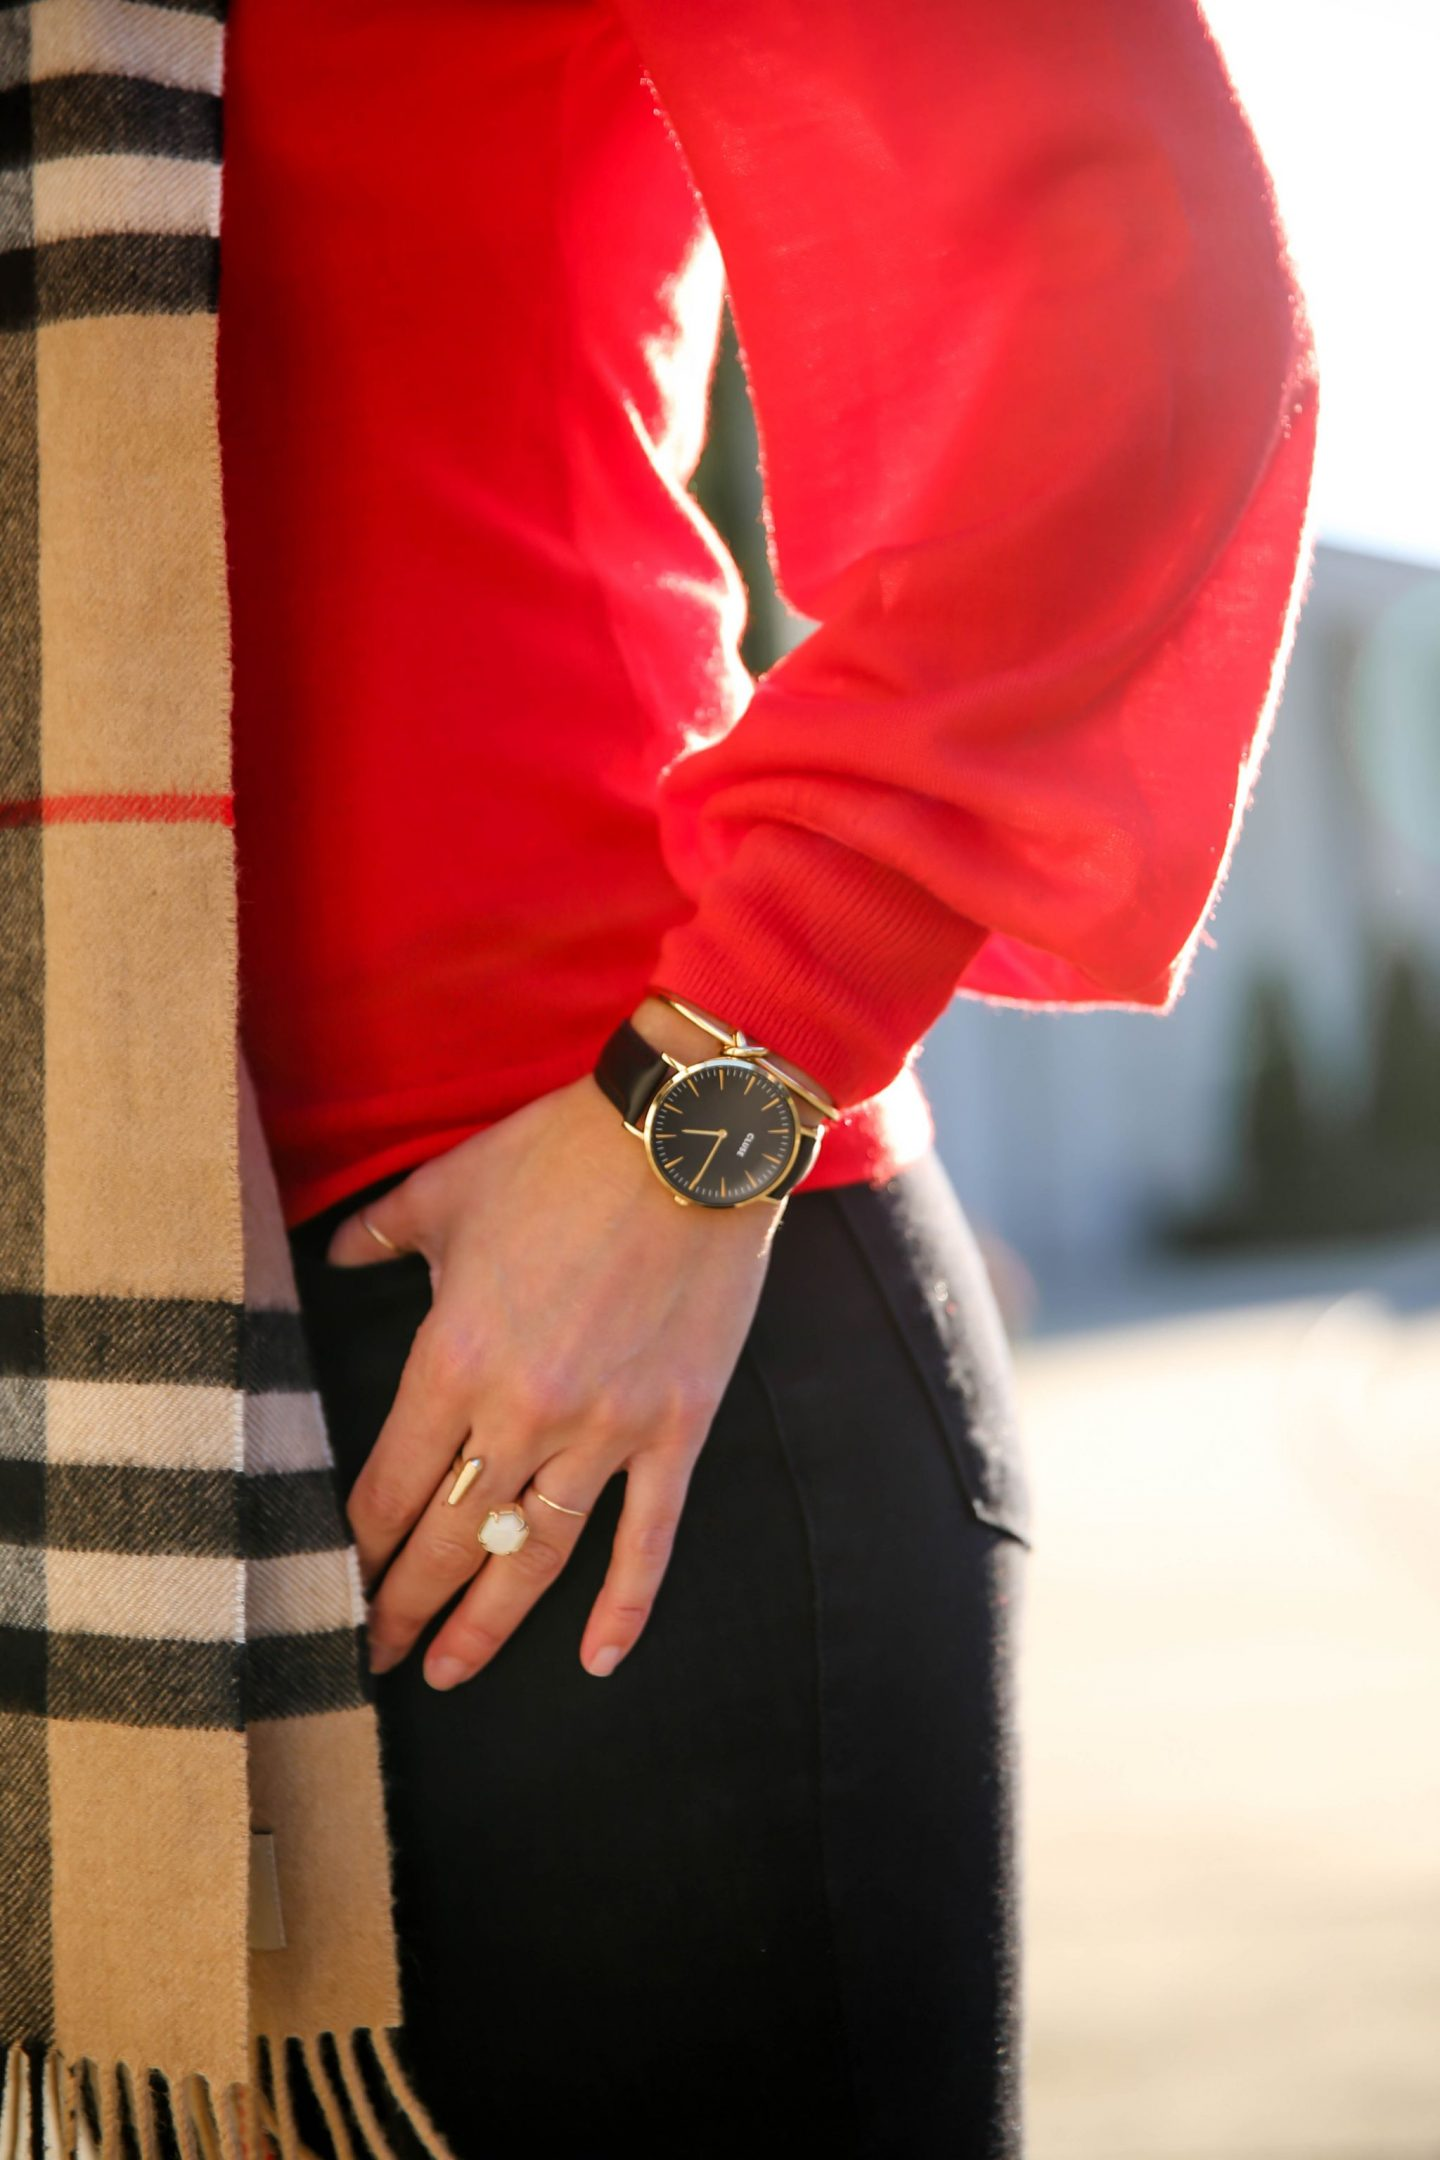 Cluse Watch - Burberry Scarf - Lauren Schwaiger Style Blog